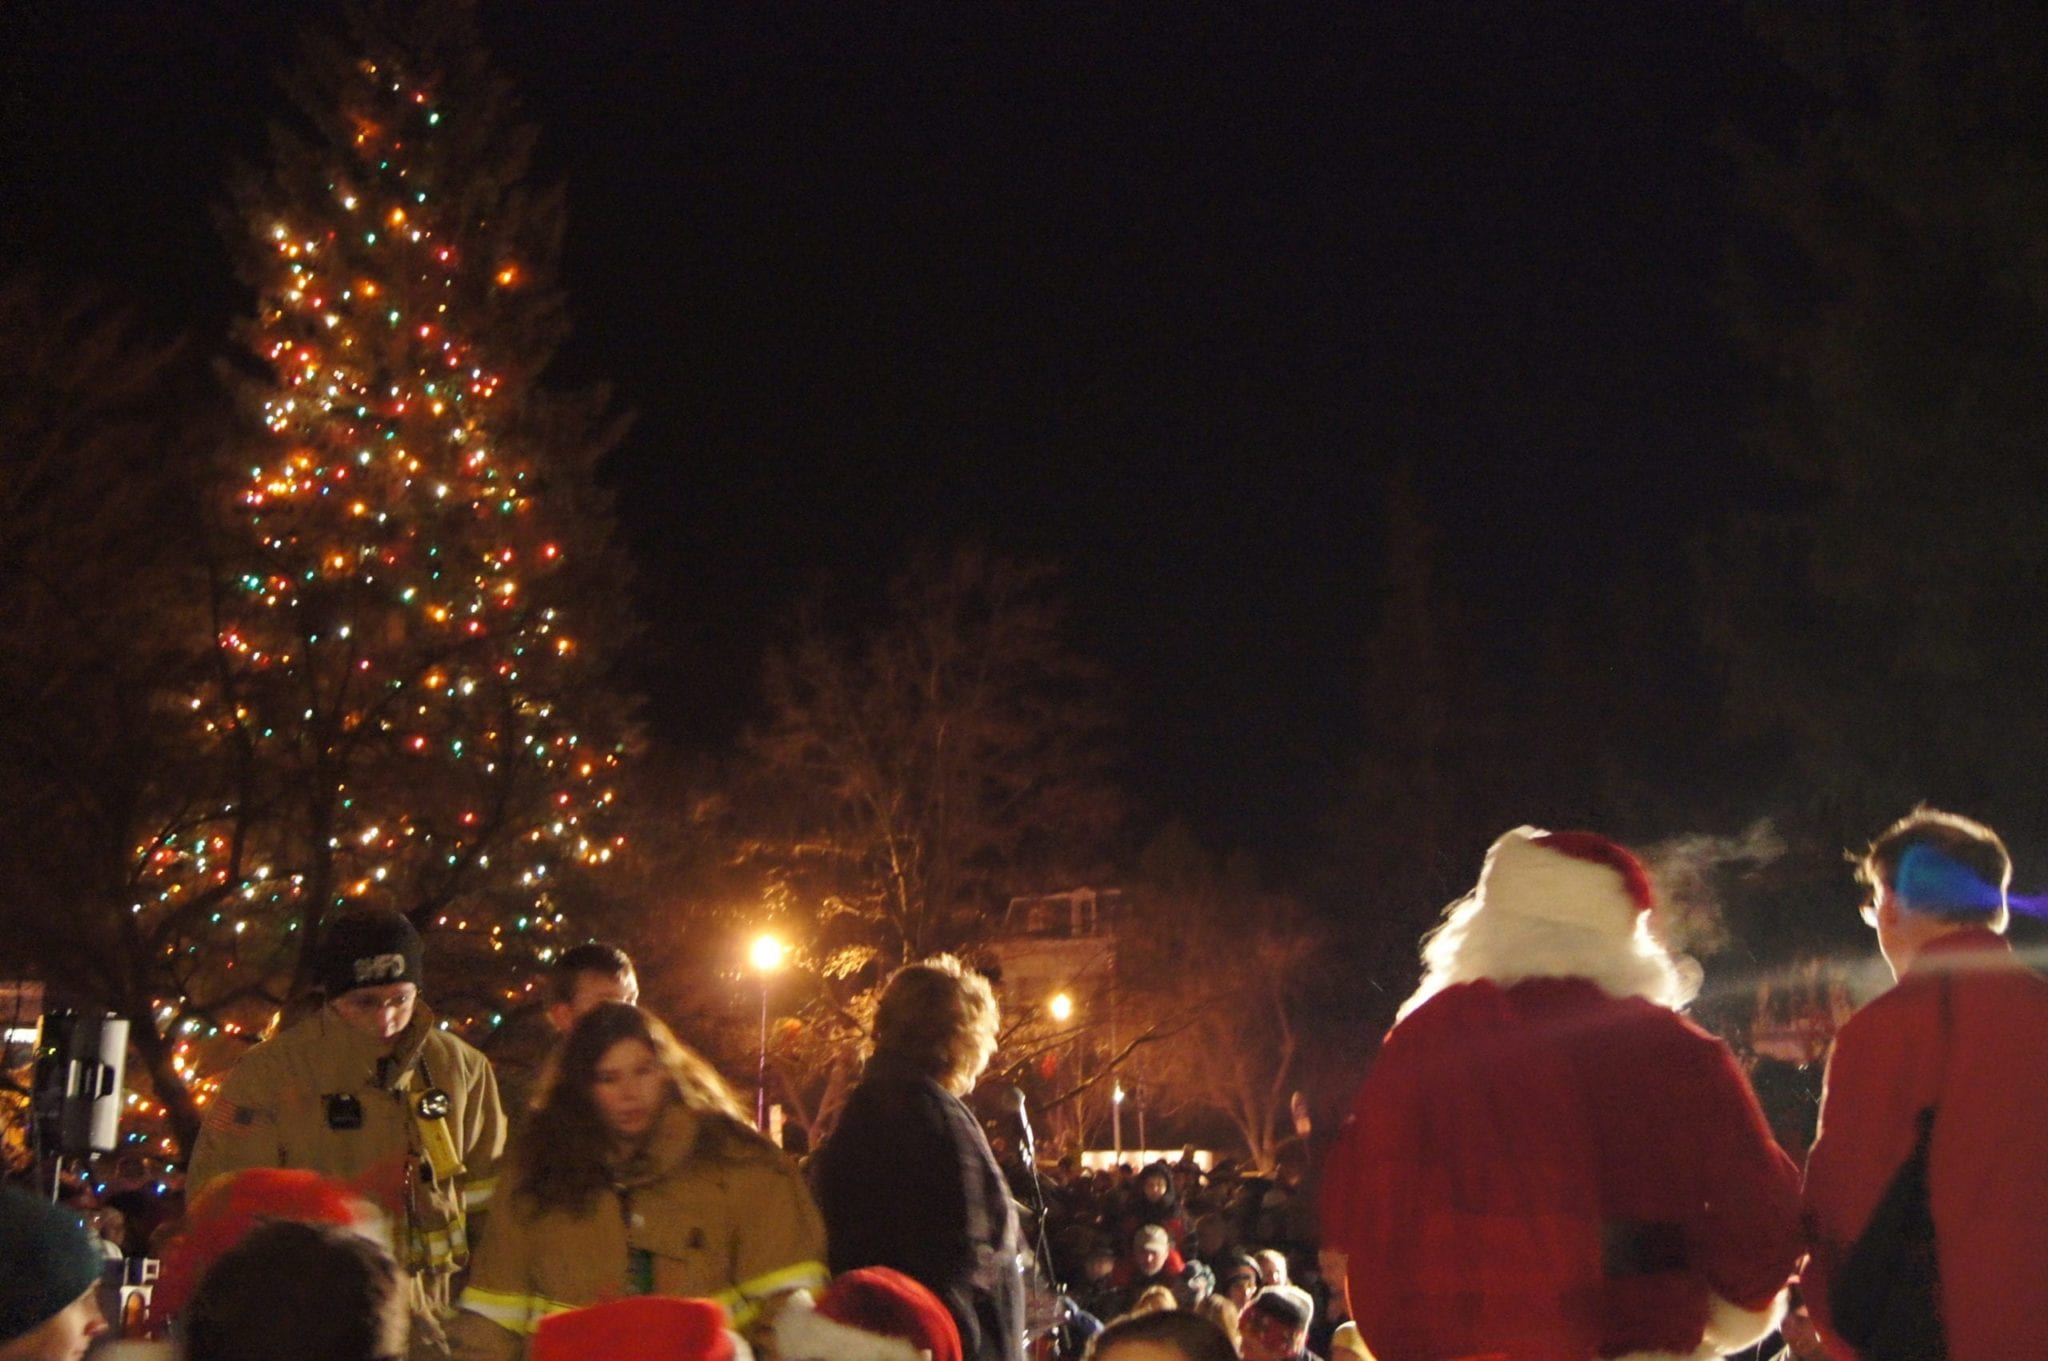 VIDEO: 35th Annual Cazenovia Christmas Walk and Tree Lighting a success